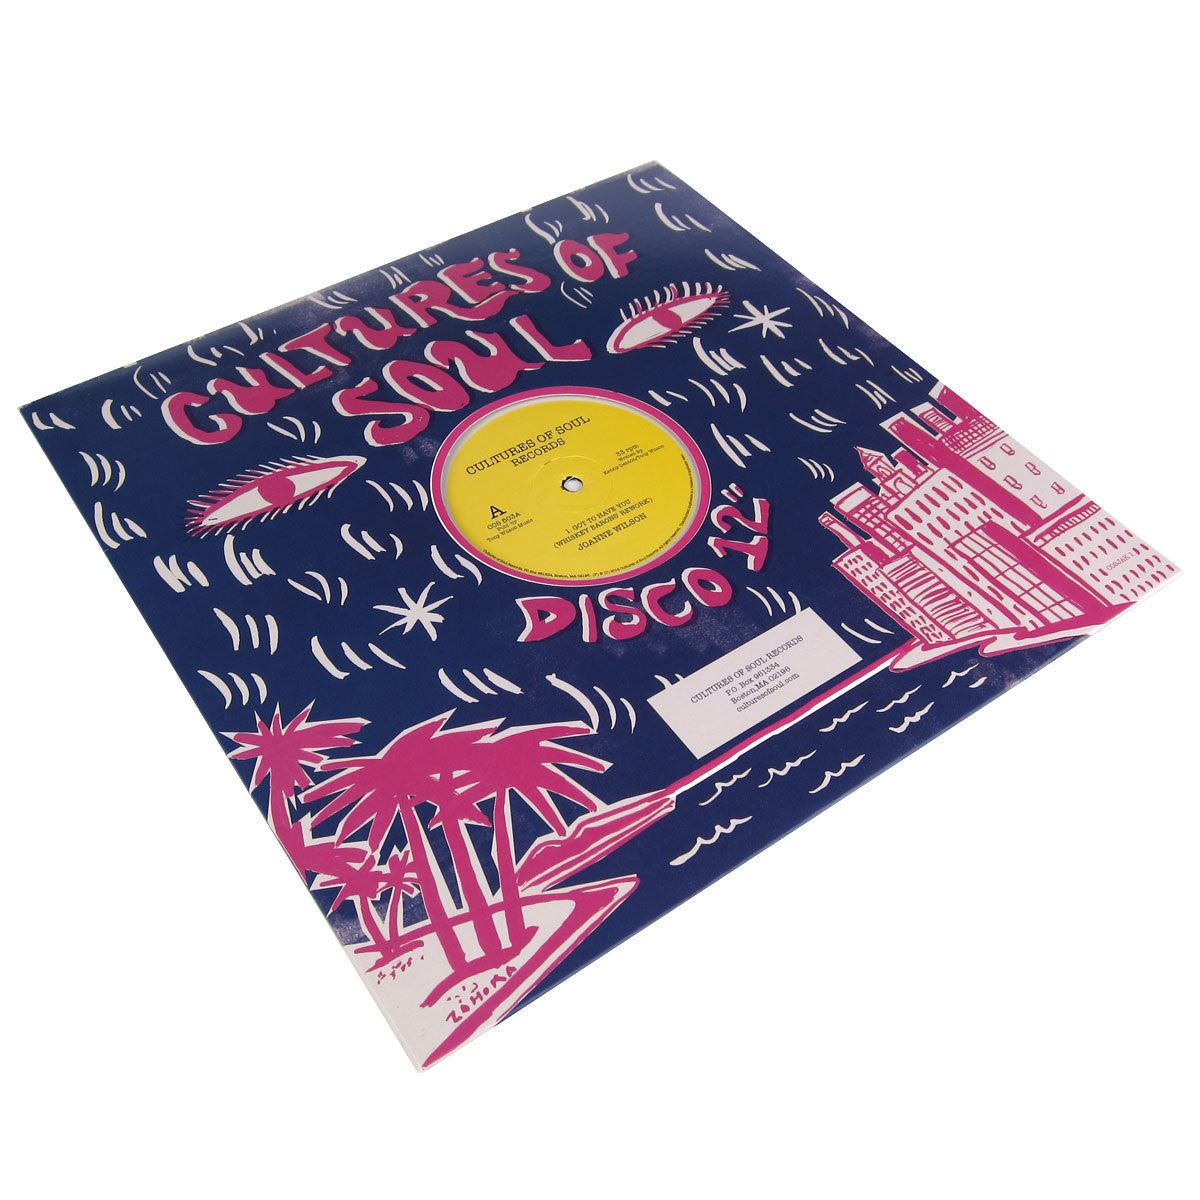 Joanne Wilson: Got To Have You (Whiskey Barons Rework) Vinyl 12""